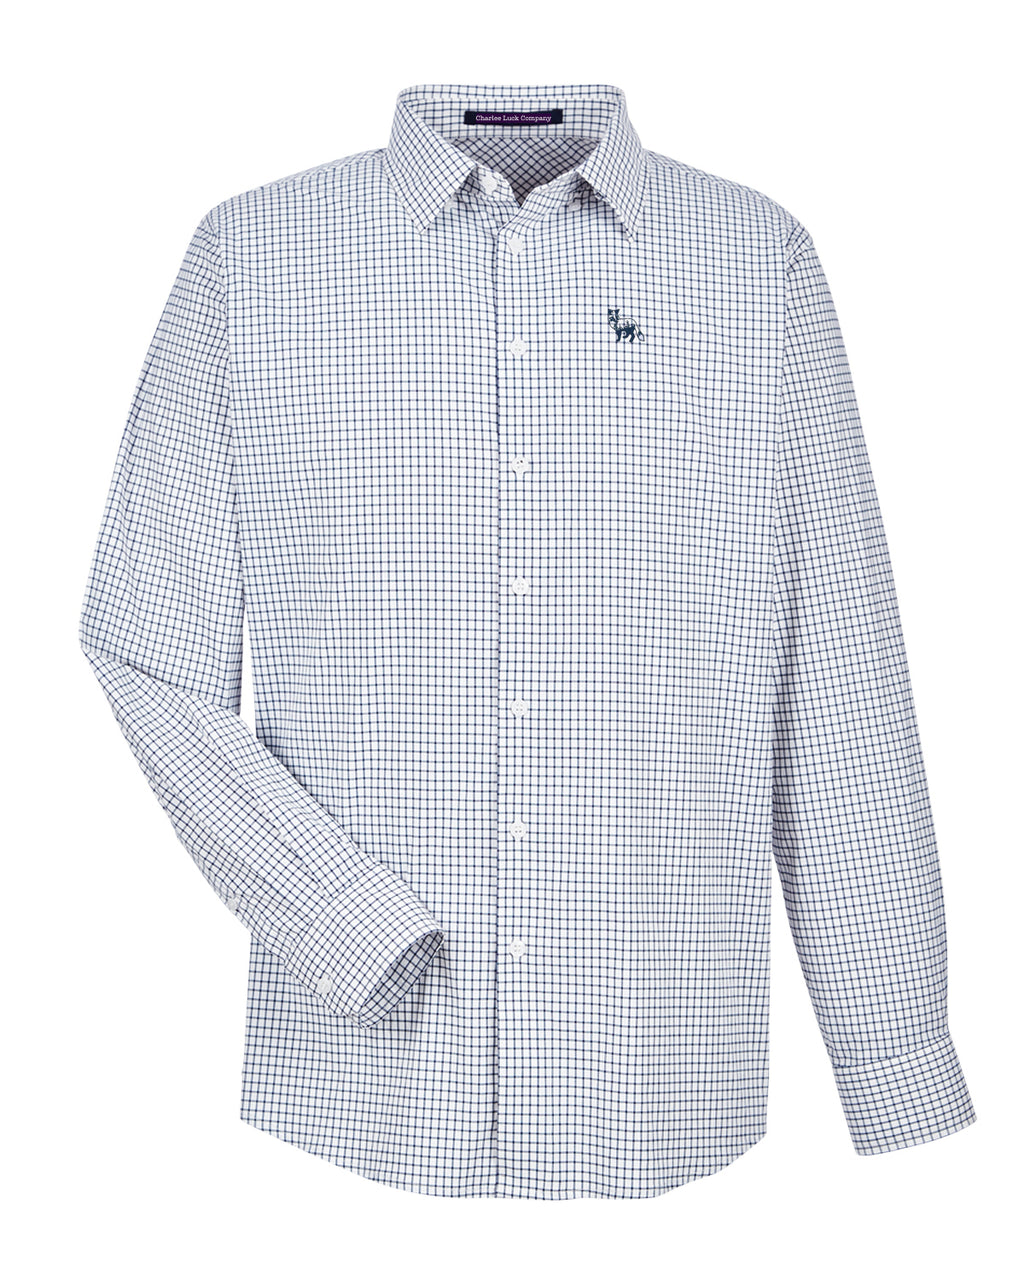 The Sport Button Down Navy